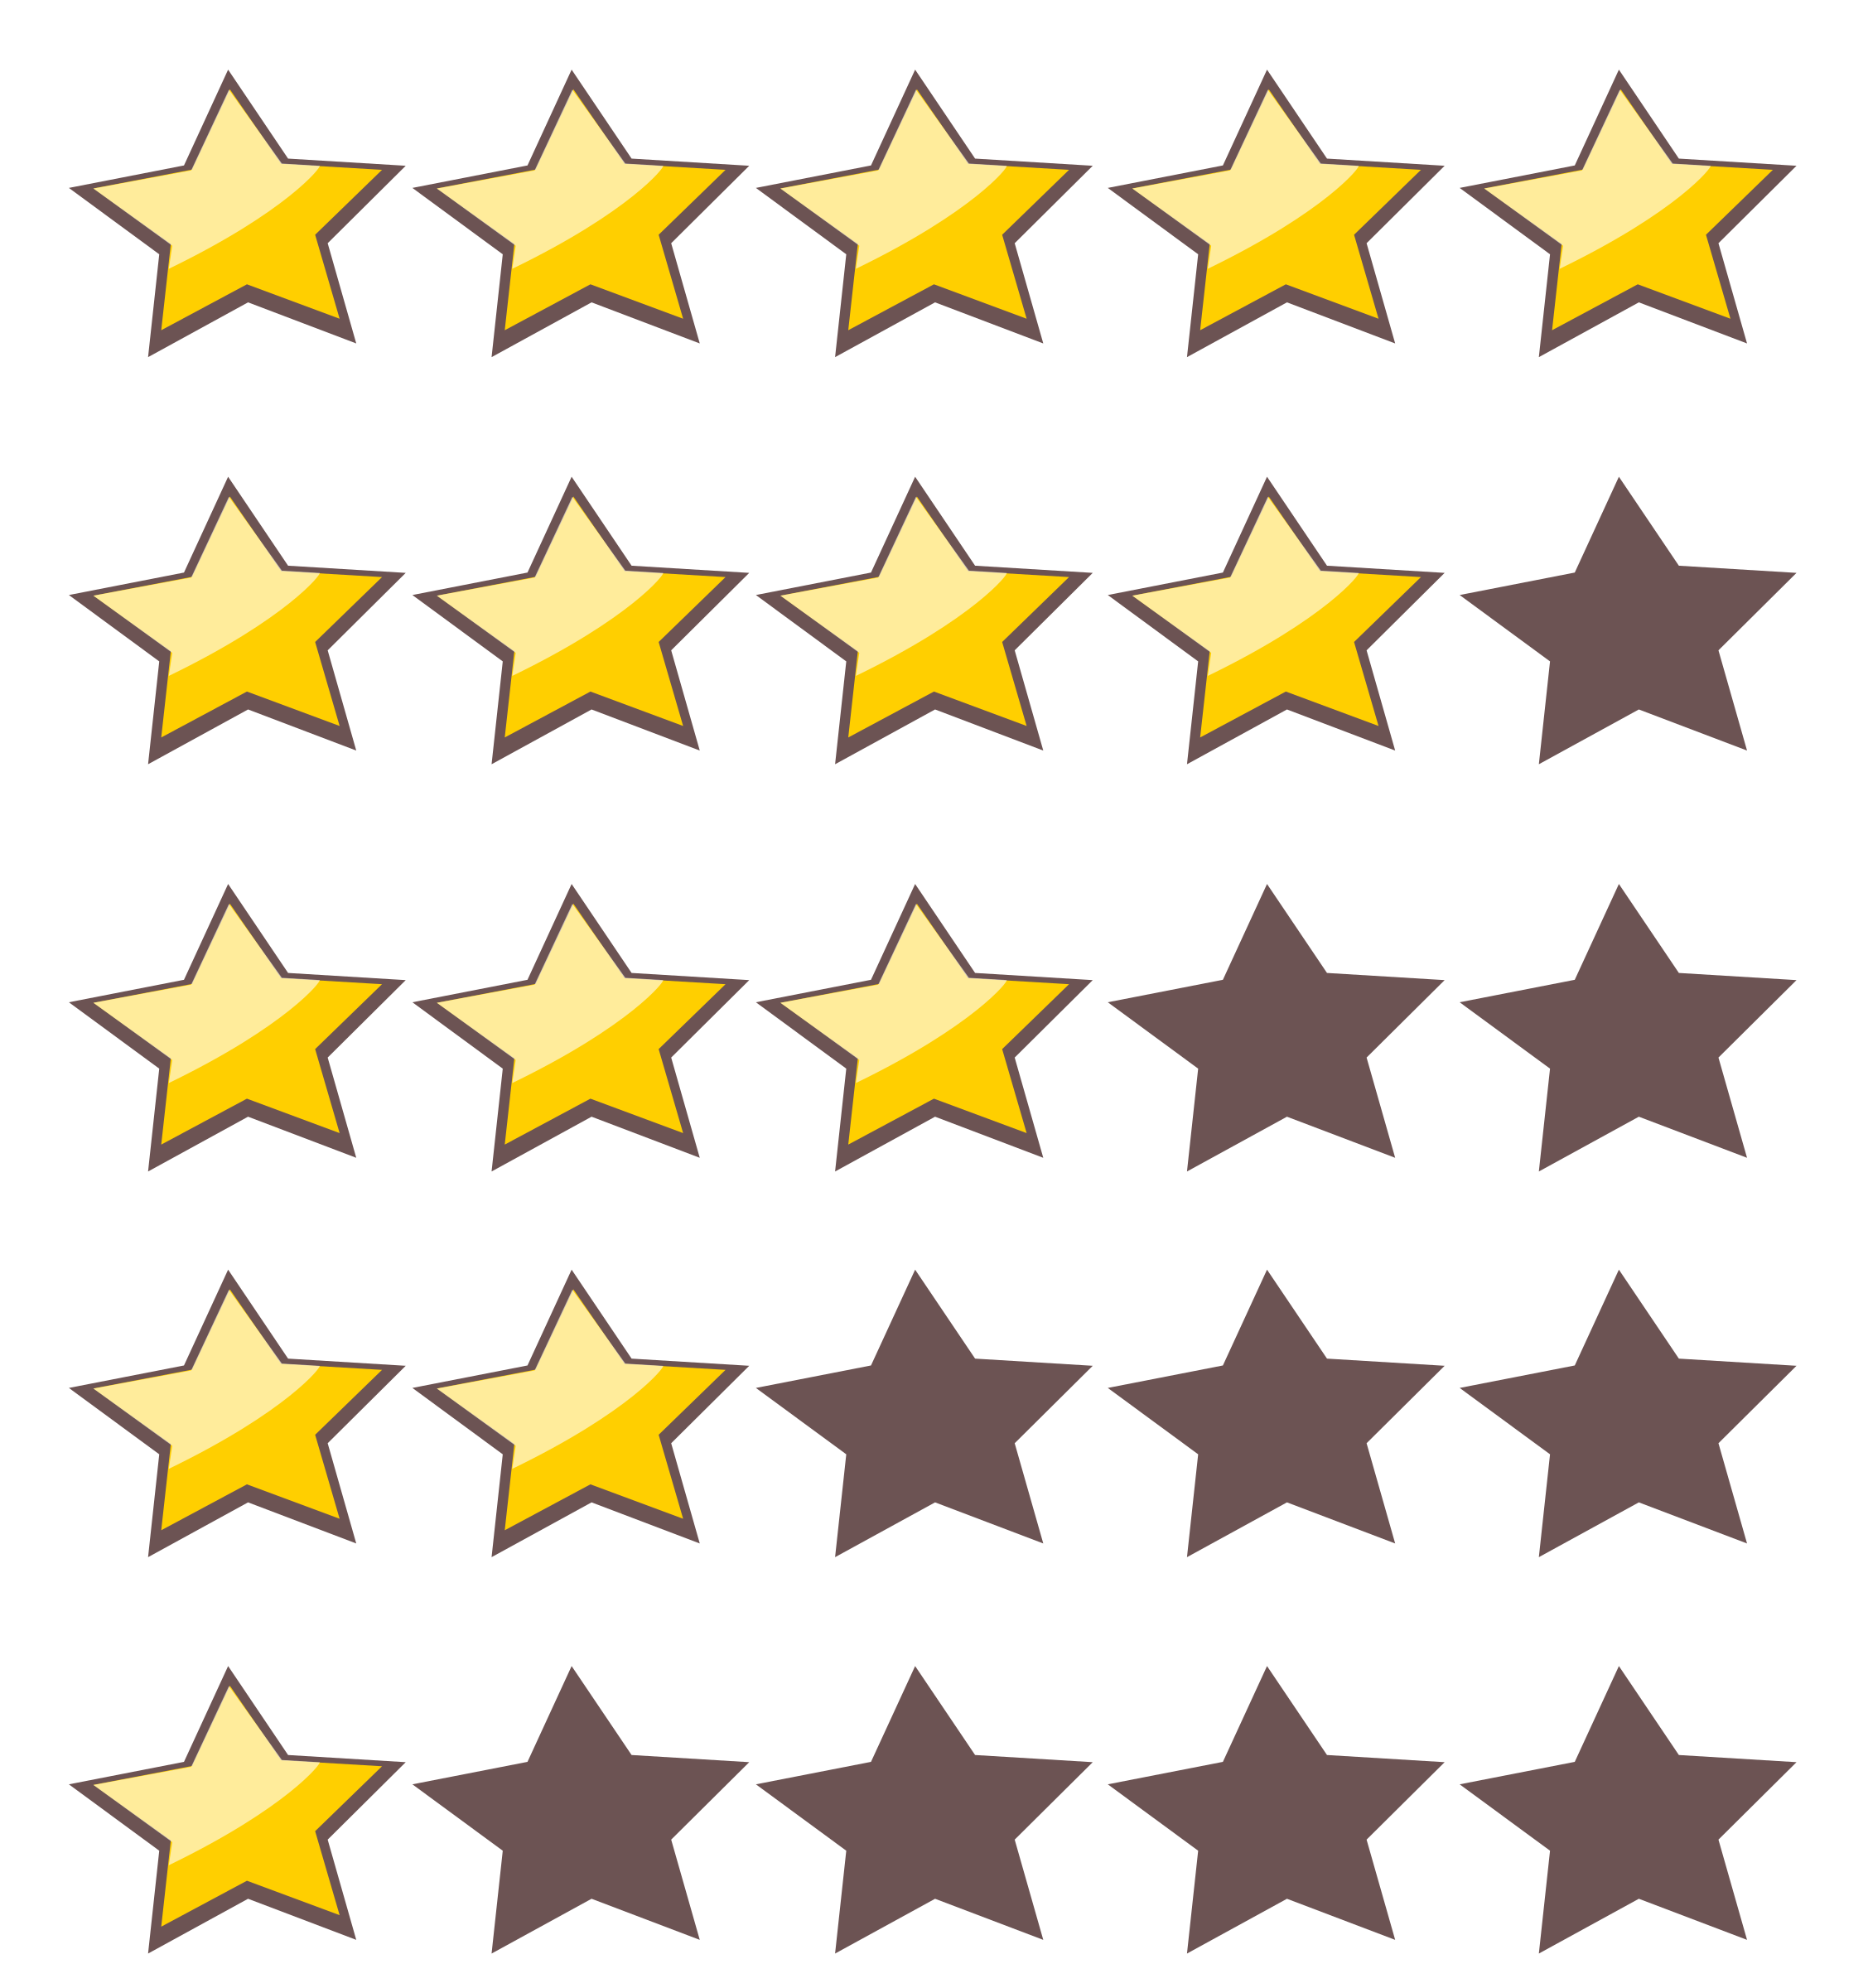 Clipart movie star banner freeuse download Clipart - 5-Star Rating System banner freeuse download